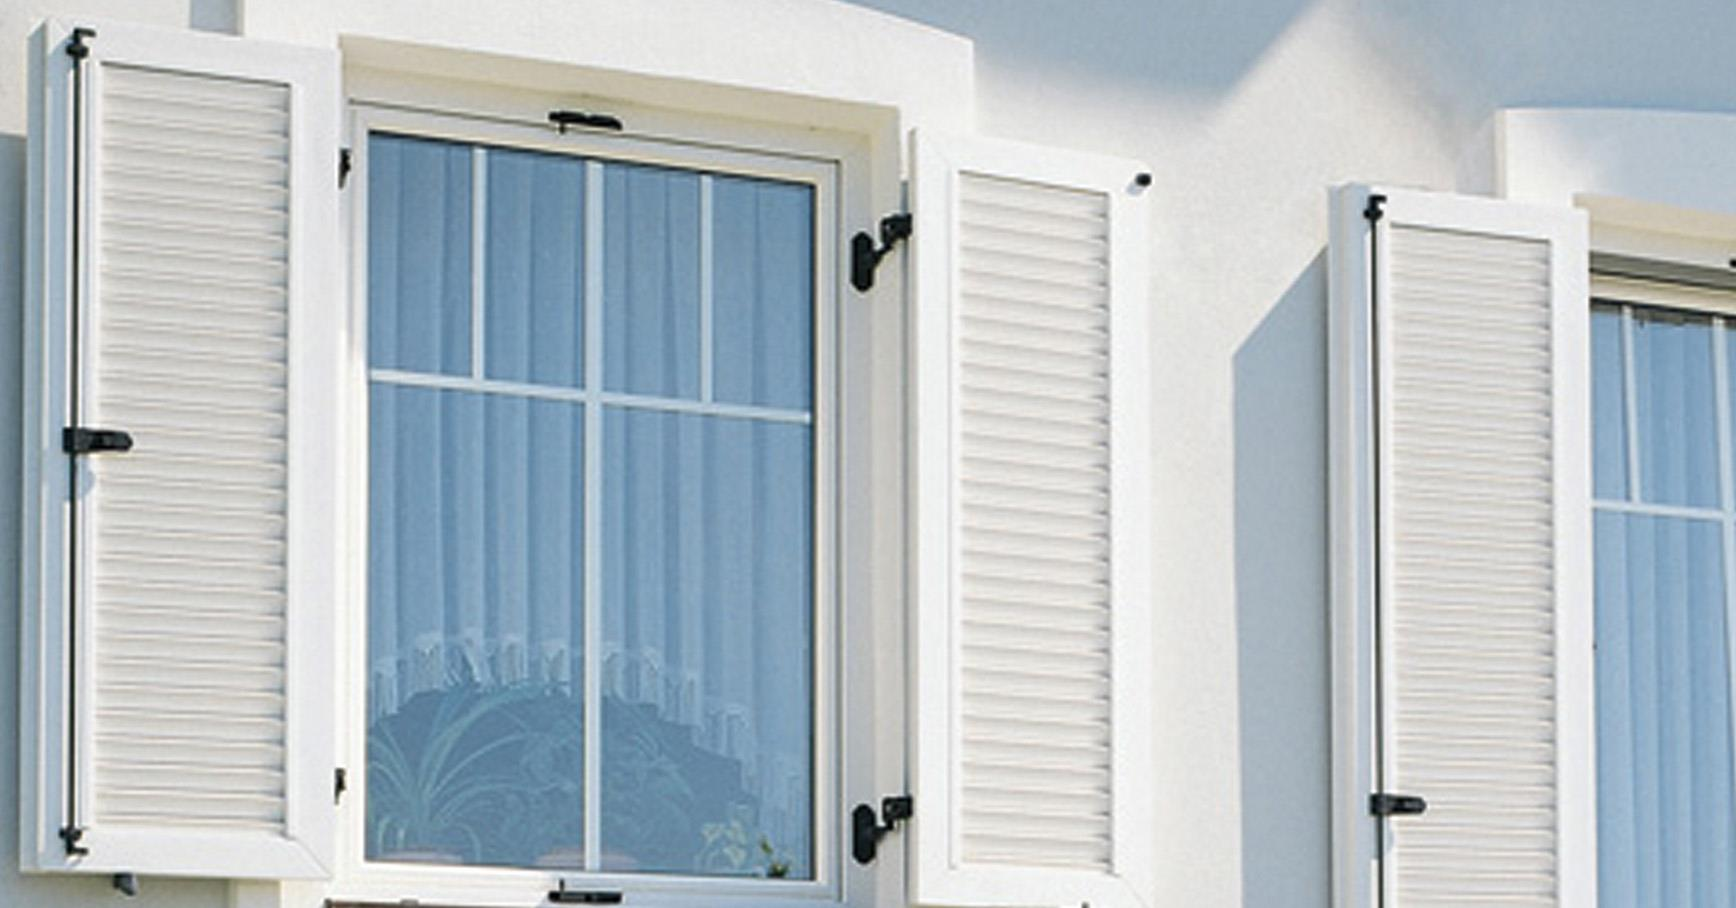 The Versatile Comfort Hardware System For Window Shutters